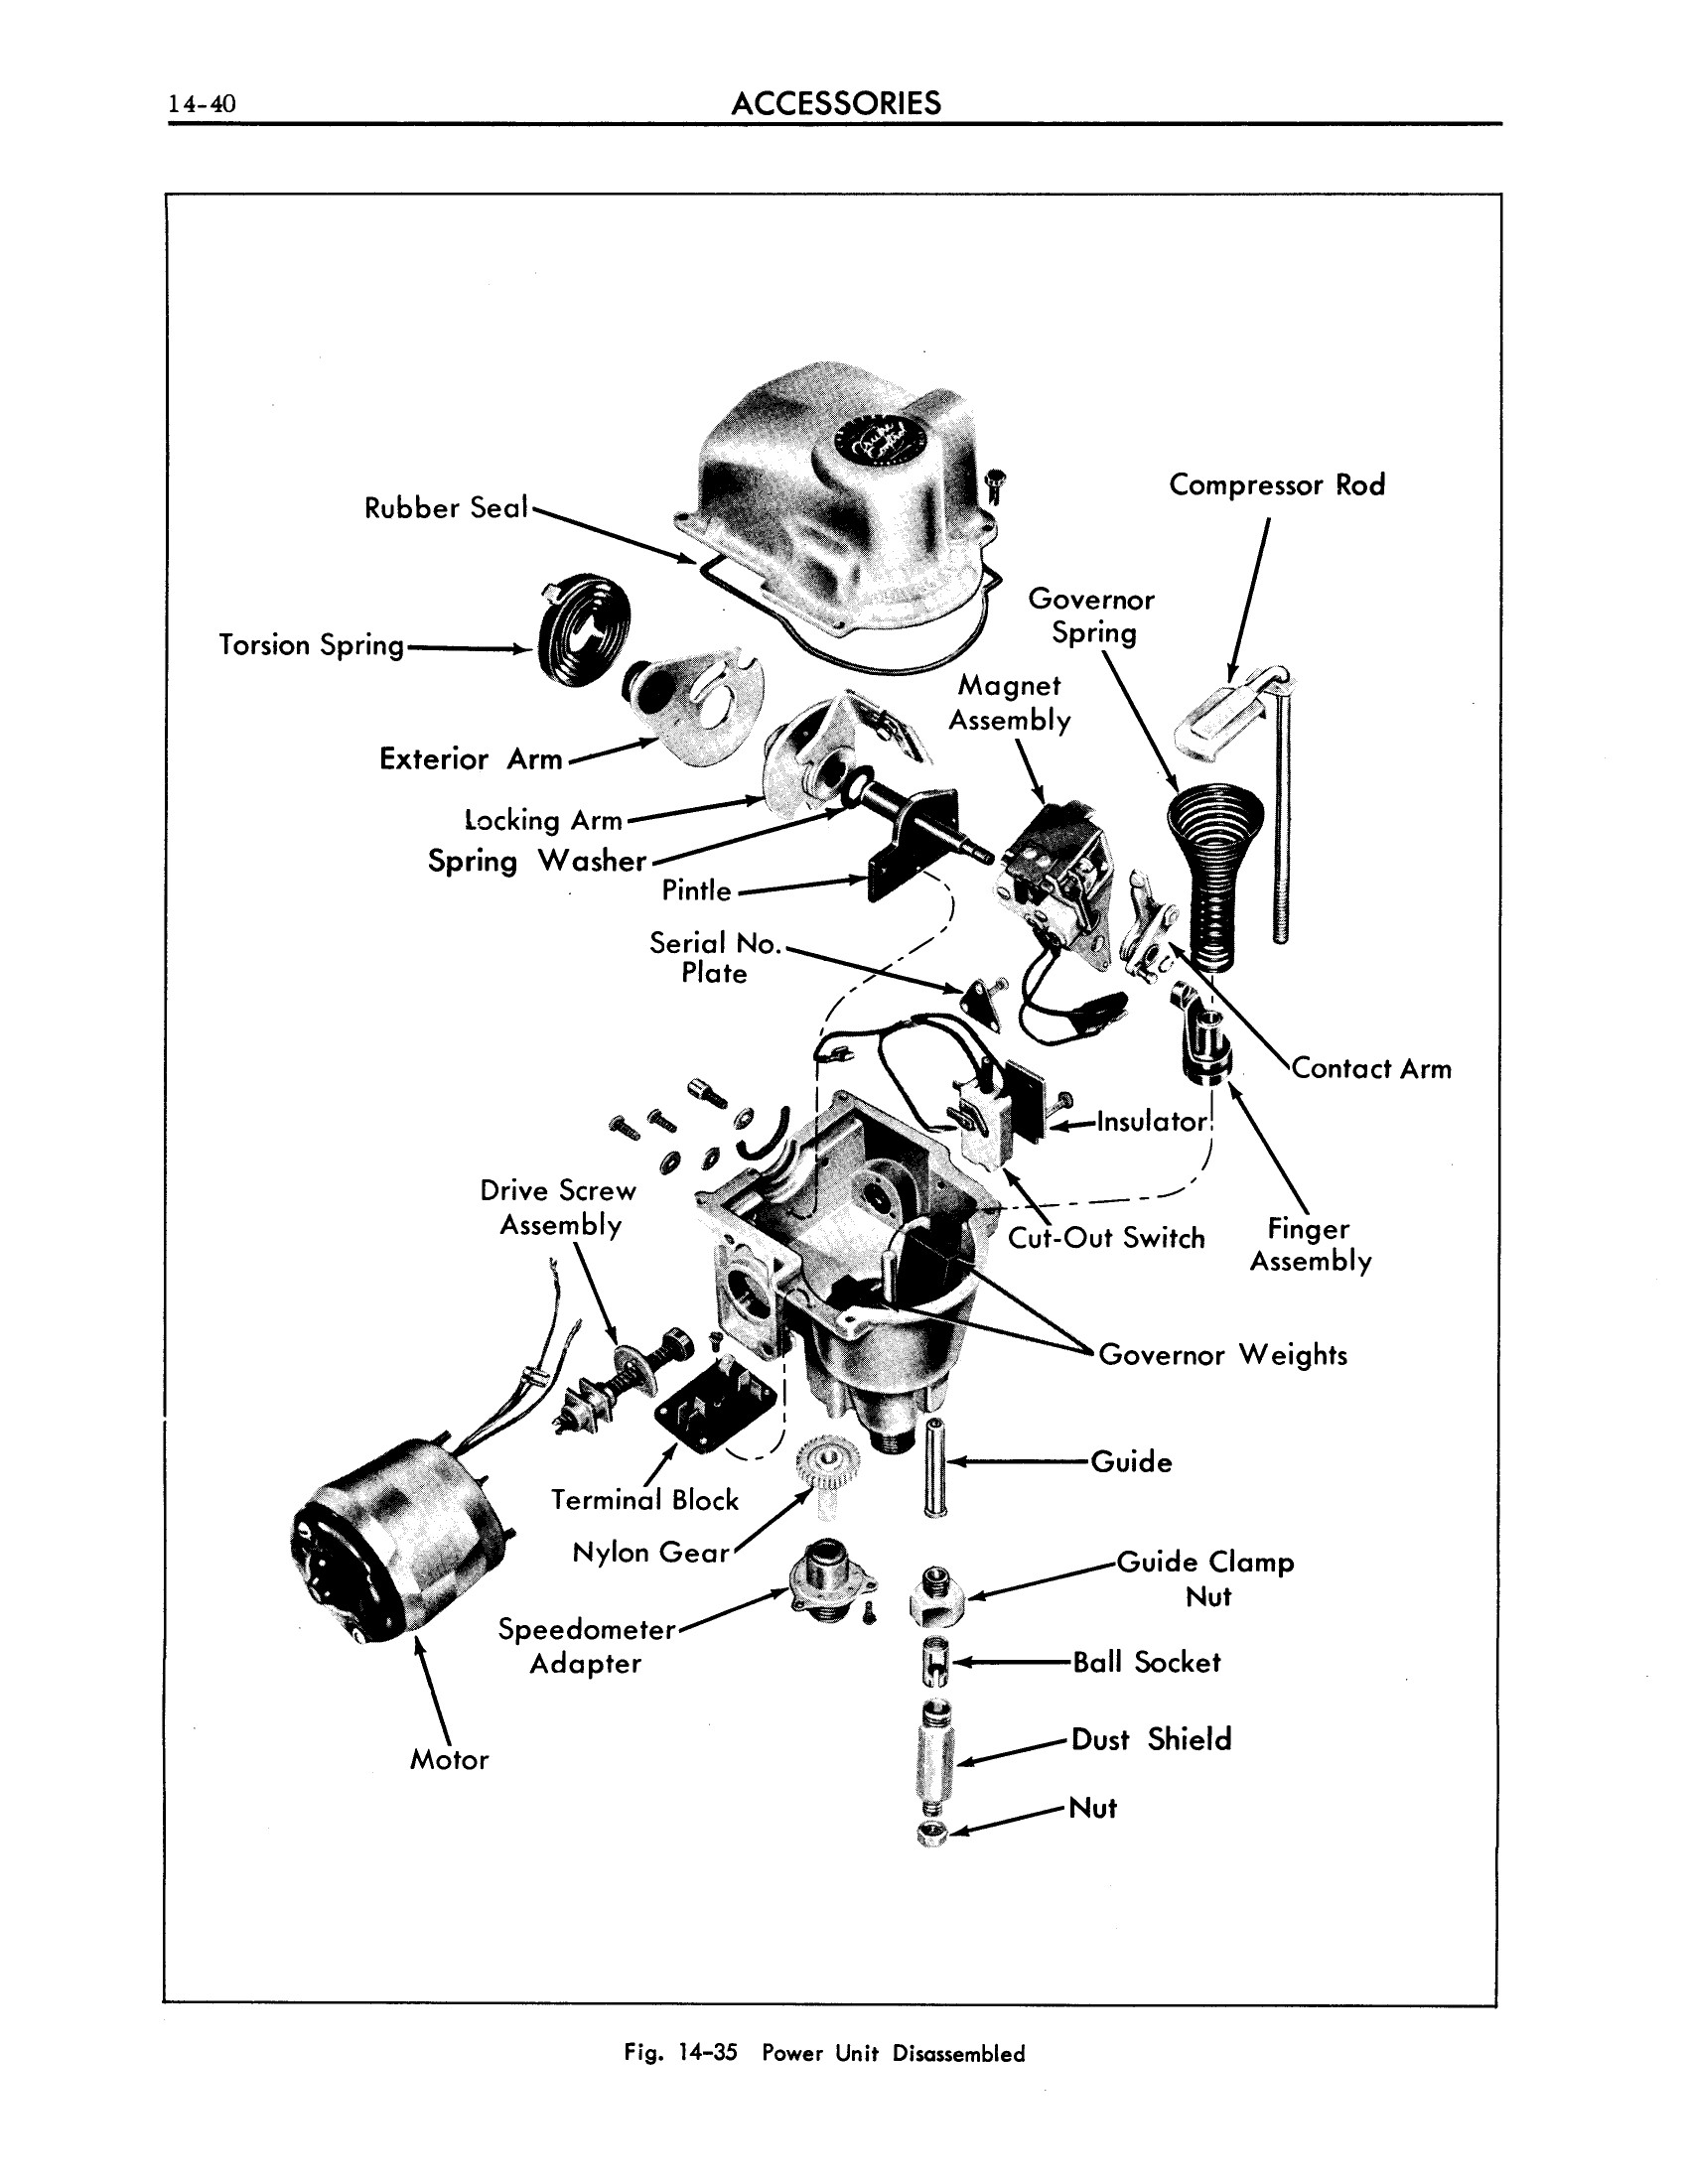 1961 Cadillac Shop Manual- Accessories Page 40 of 66